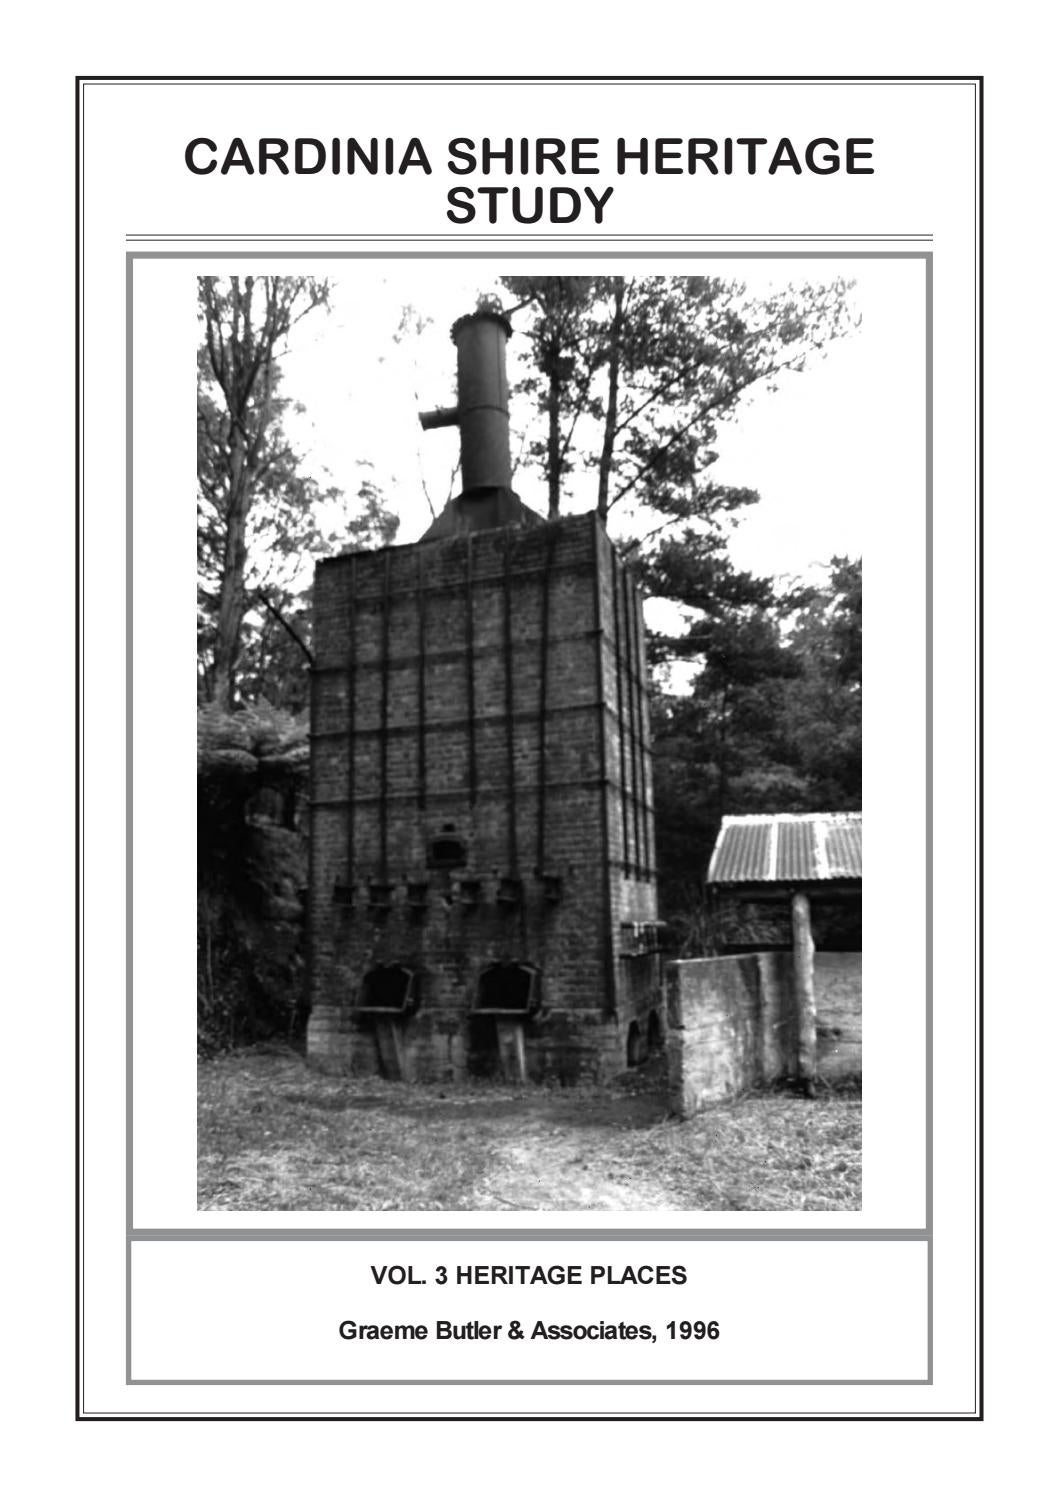 c4048a05ce2 CARDINIA SHIRE HERITAGE STUDY VOL. 3 HERITAGE PLACES by Graeme ...